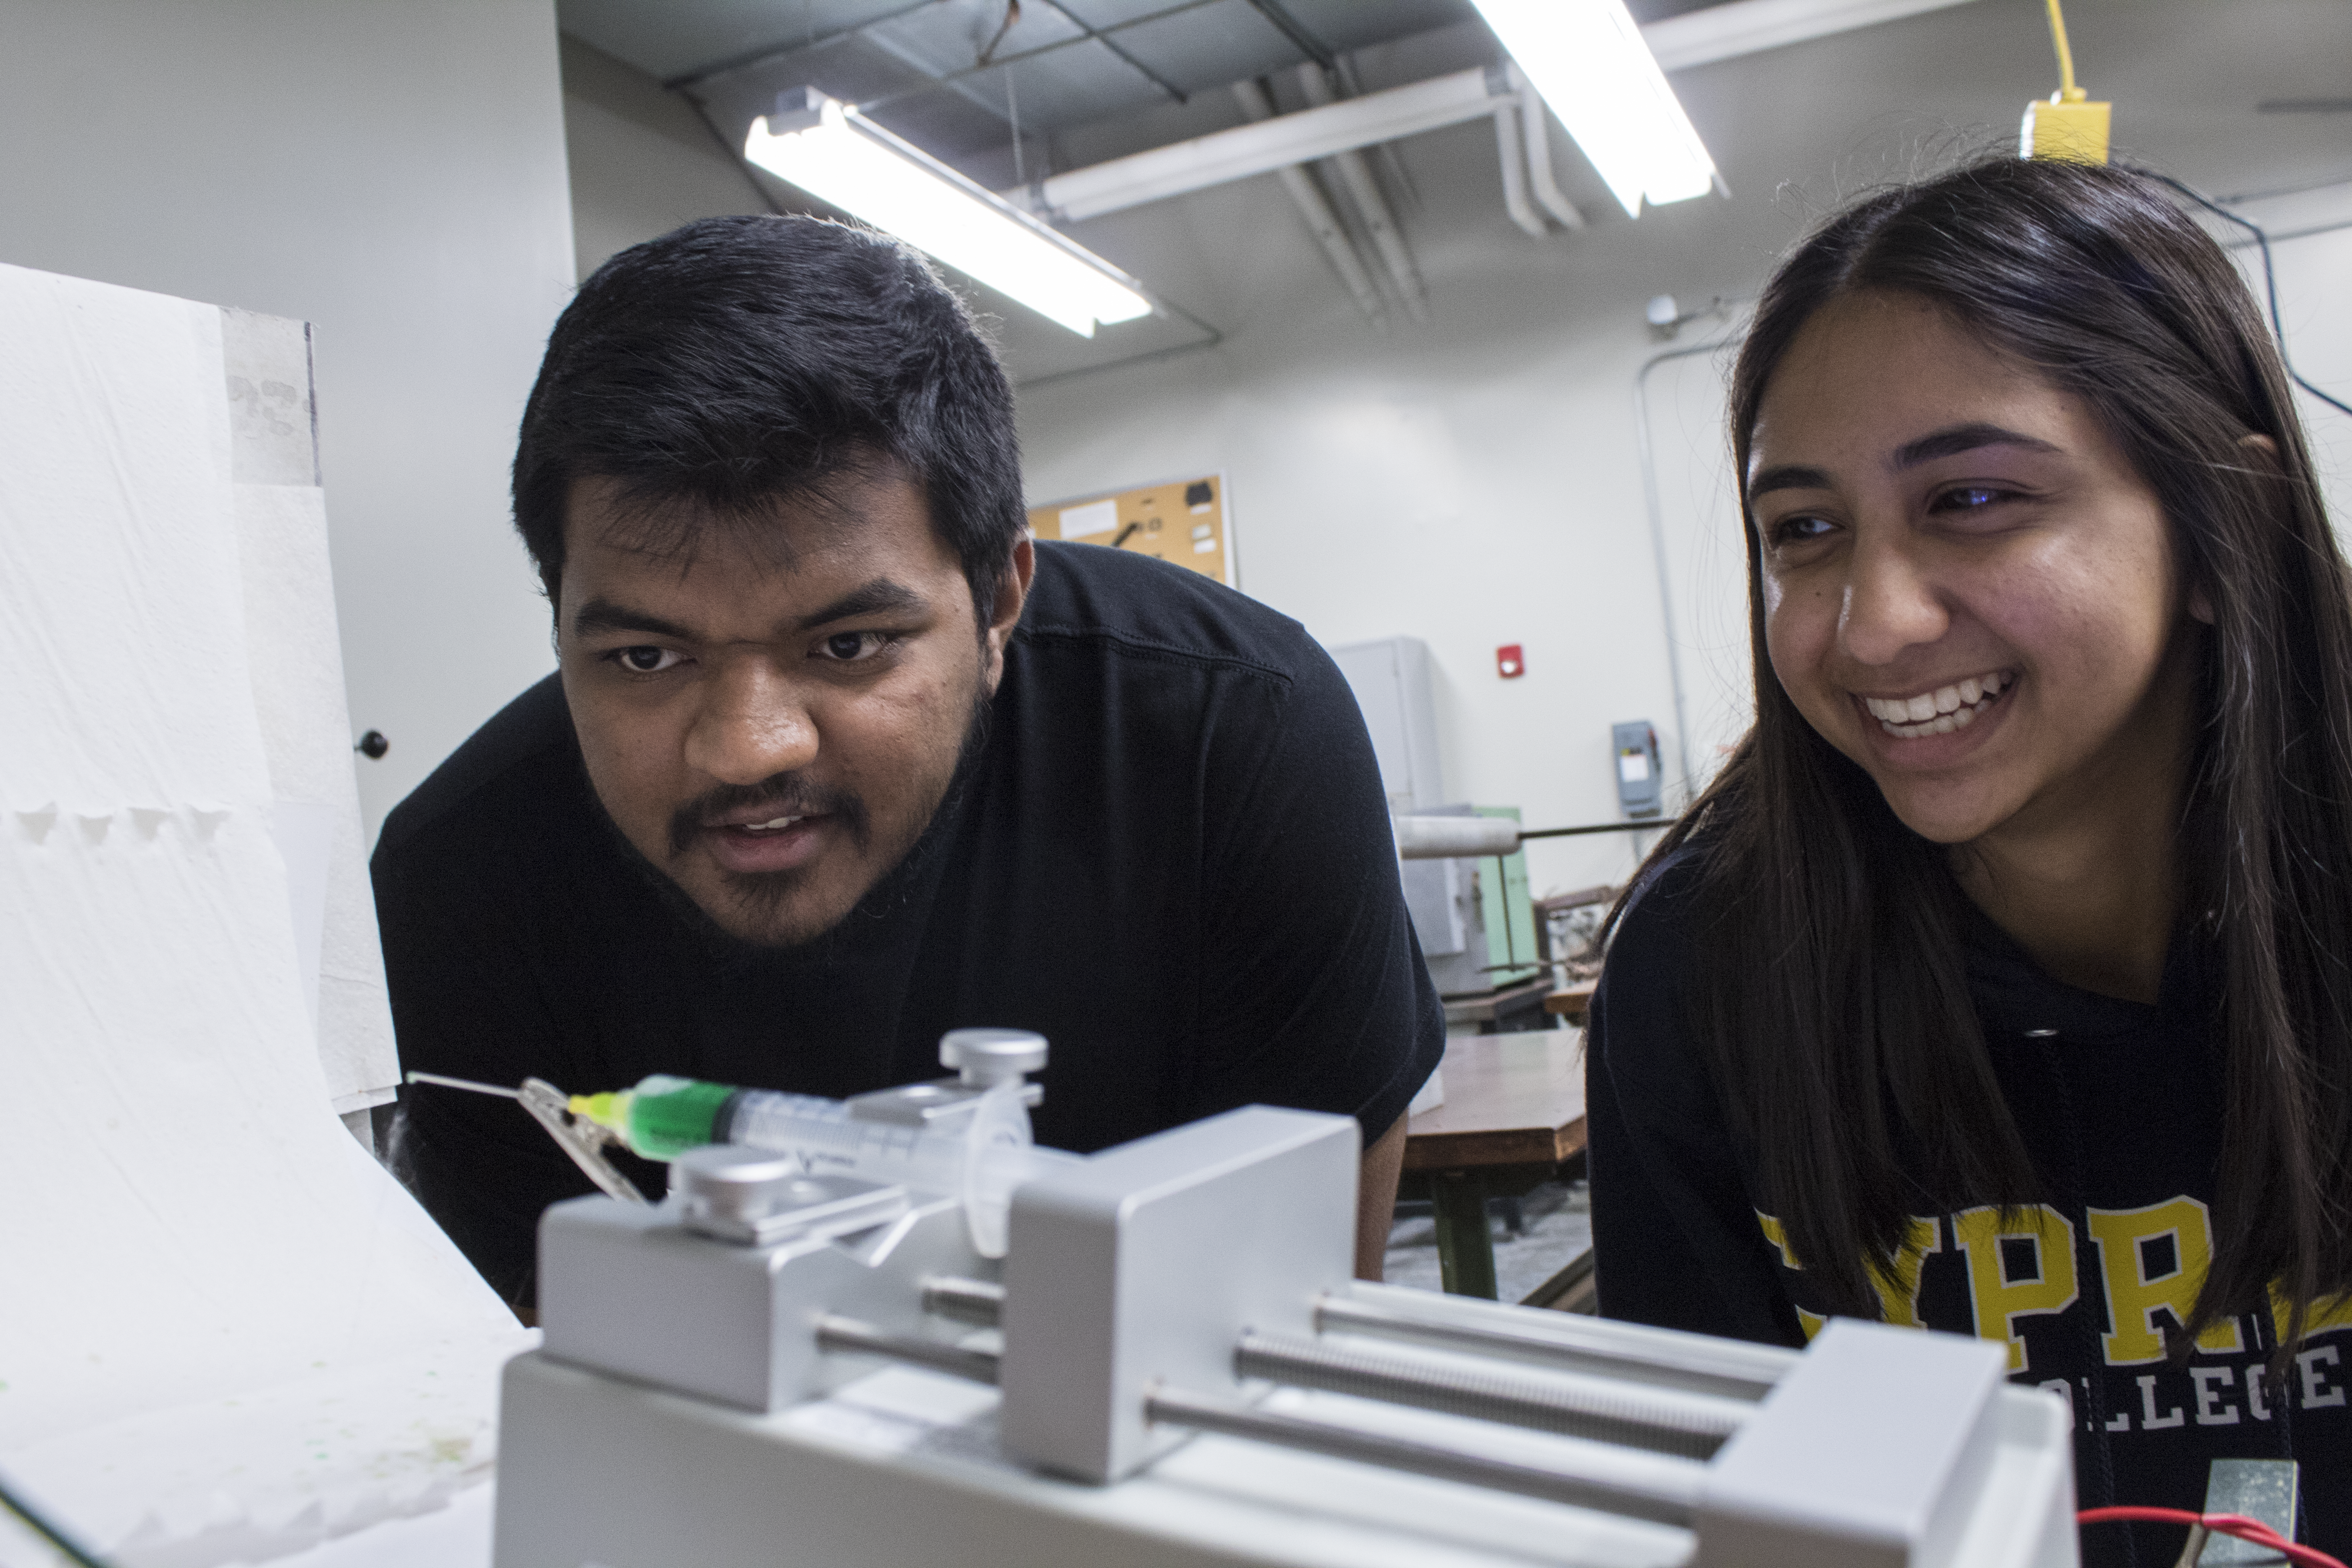 Student and mentor in lab setting